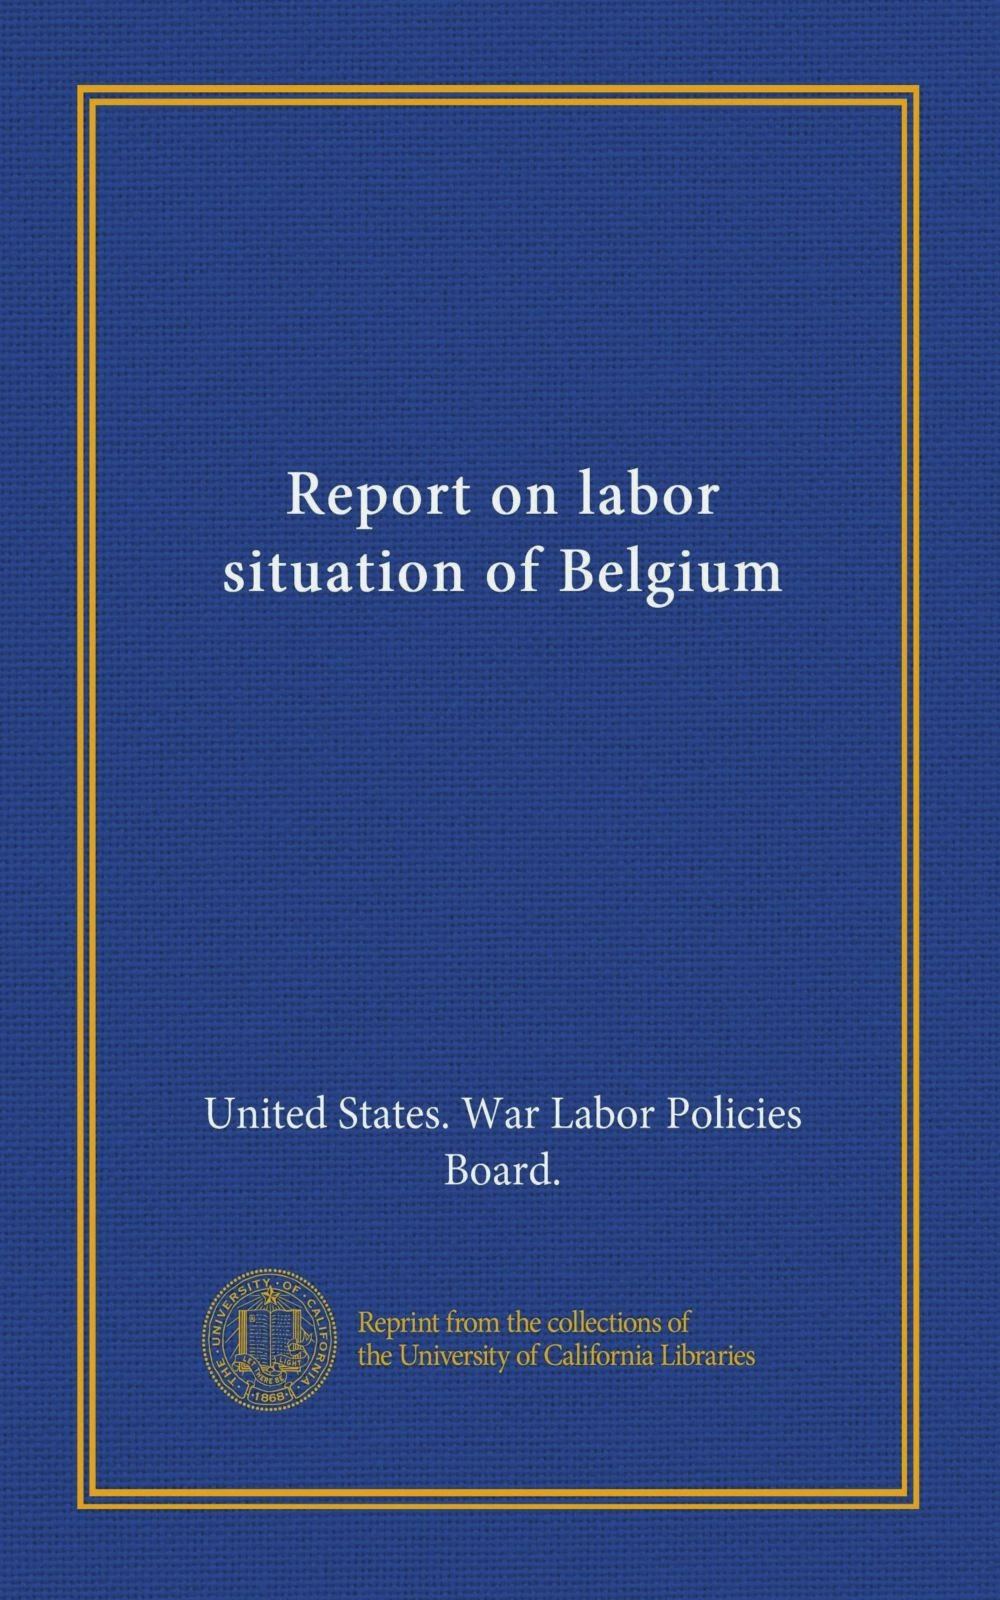 Download Report on labor situation of Belgium (Vol-1) pdf